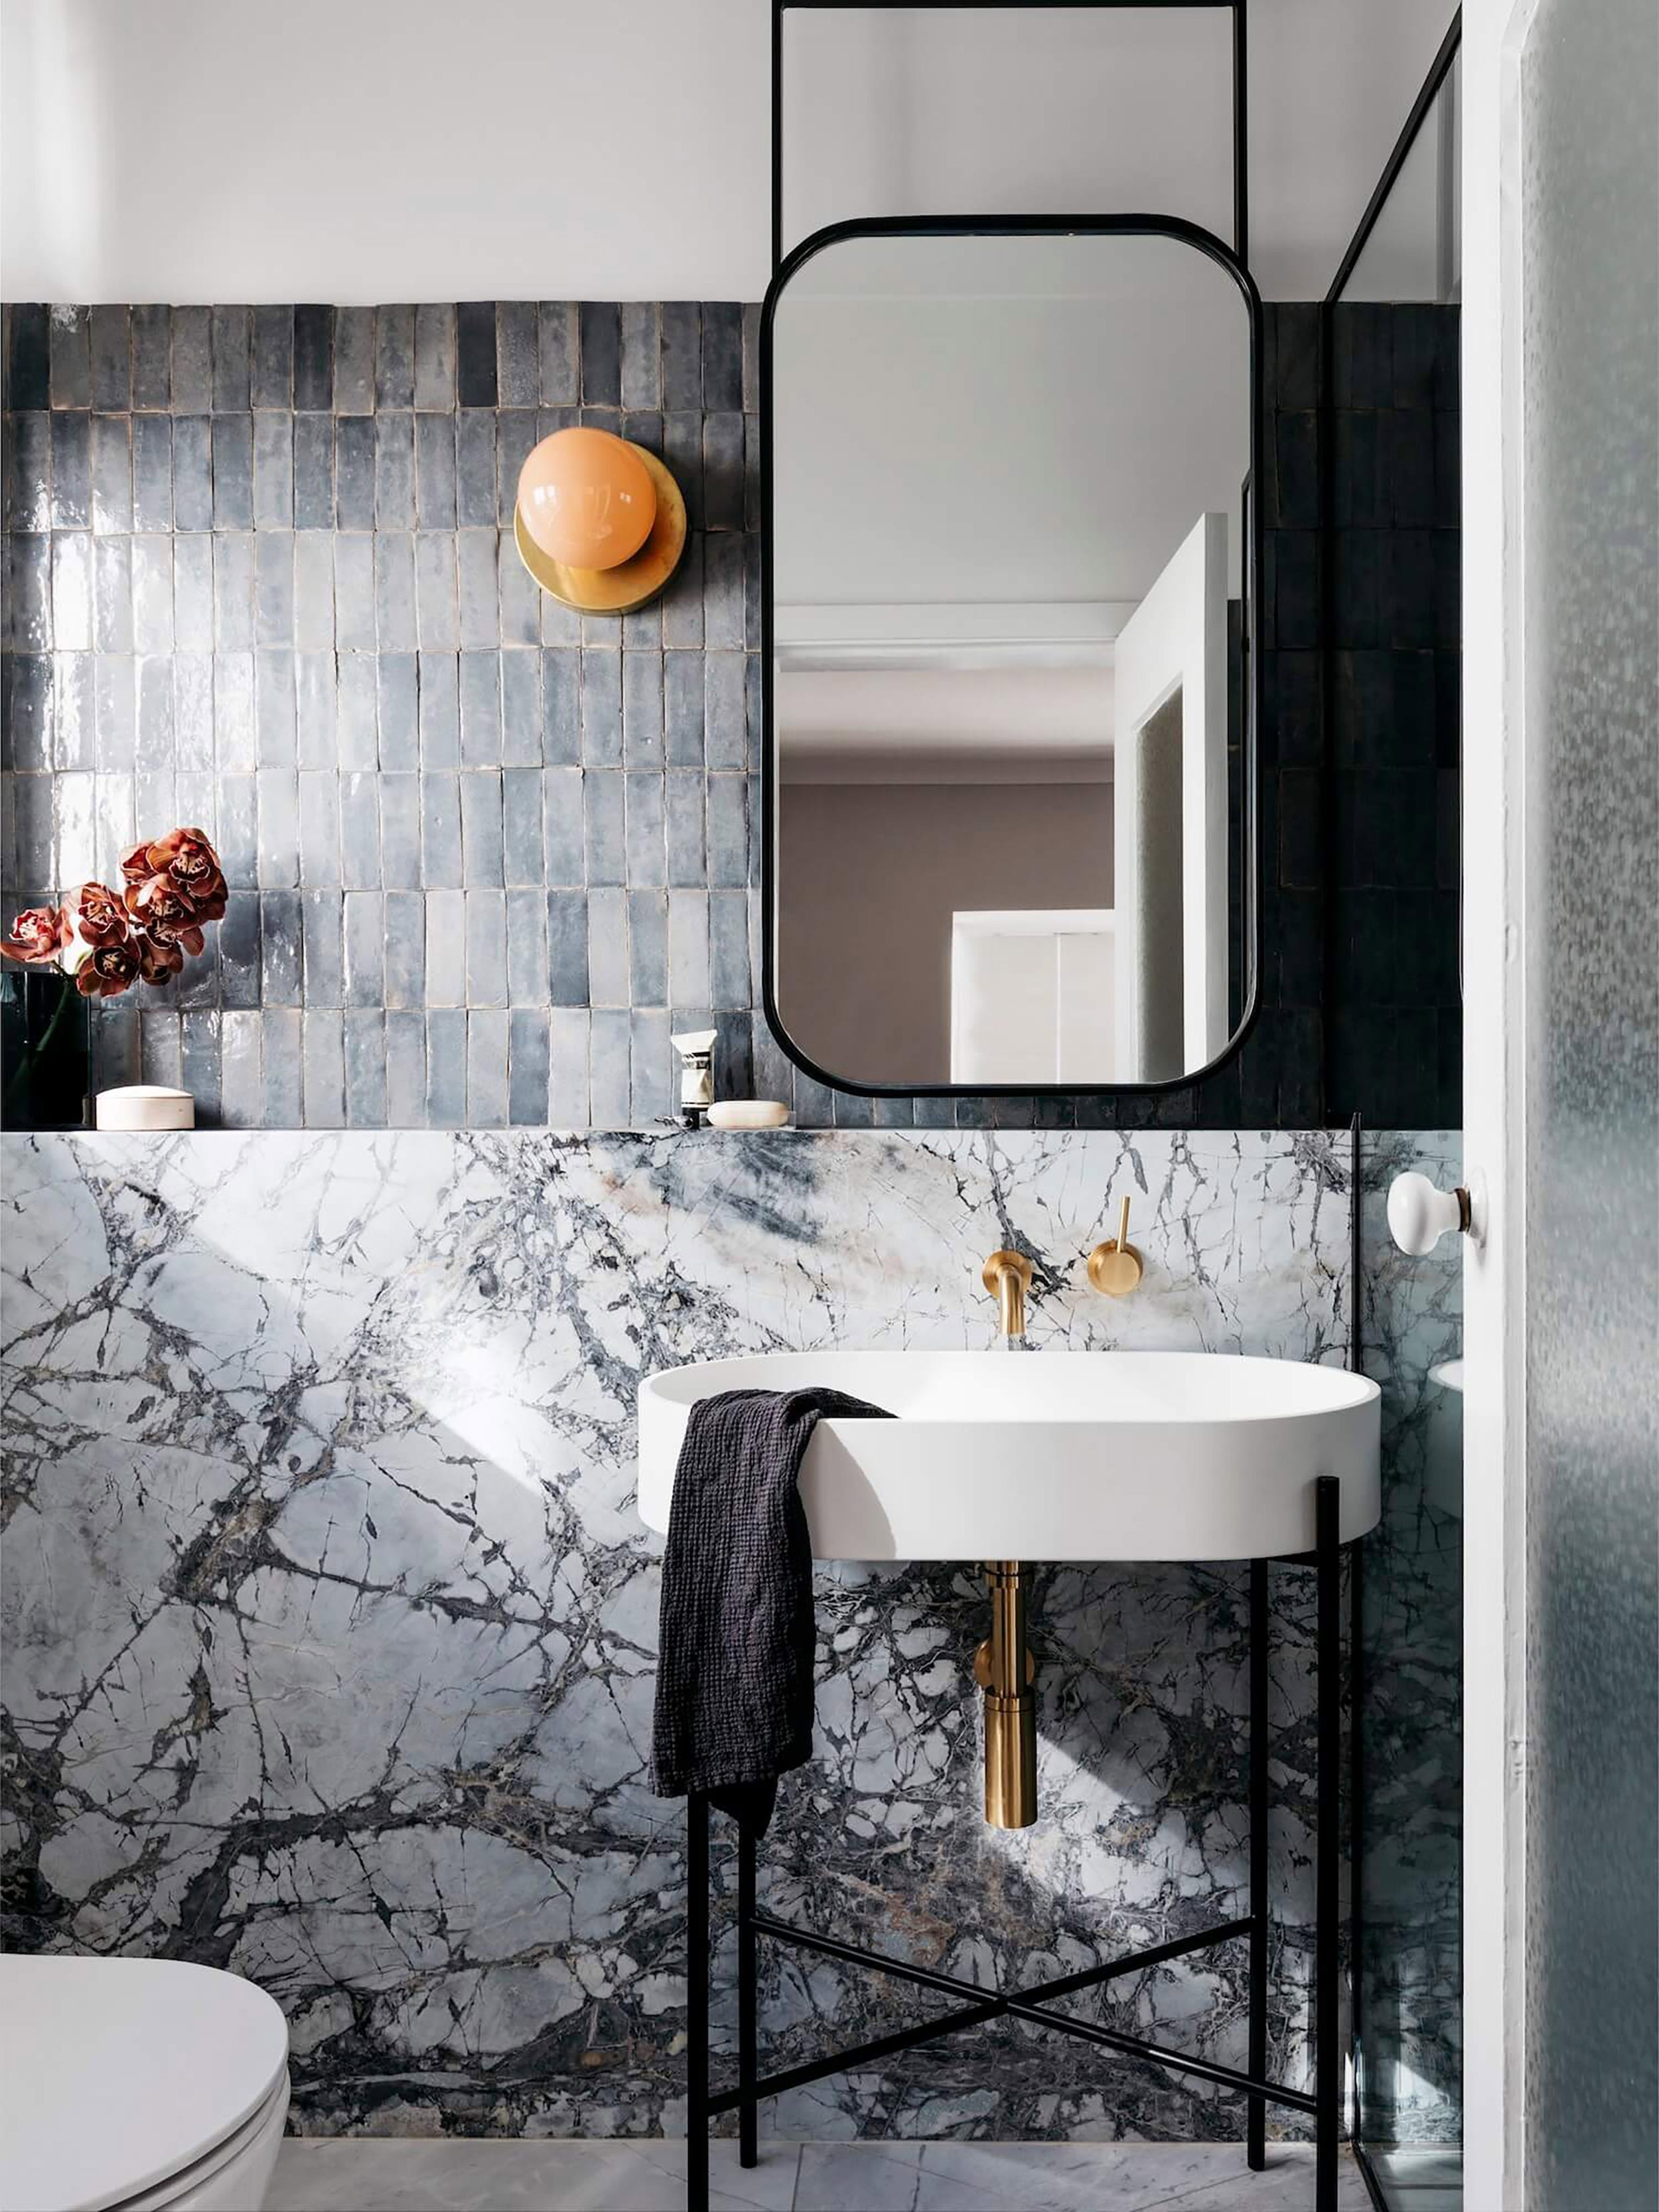 17 Fresh & Inspiring Bathroom Mirror Ideas To Shake Up Your With Regard To Industrial Modern & Contemporary Wall Mirrors (View 1 of 30)